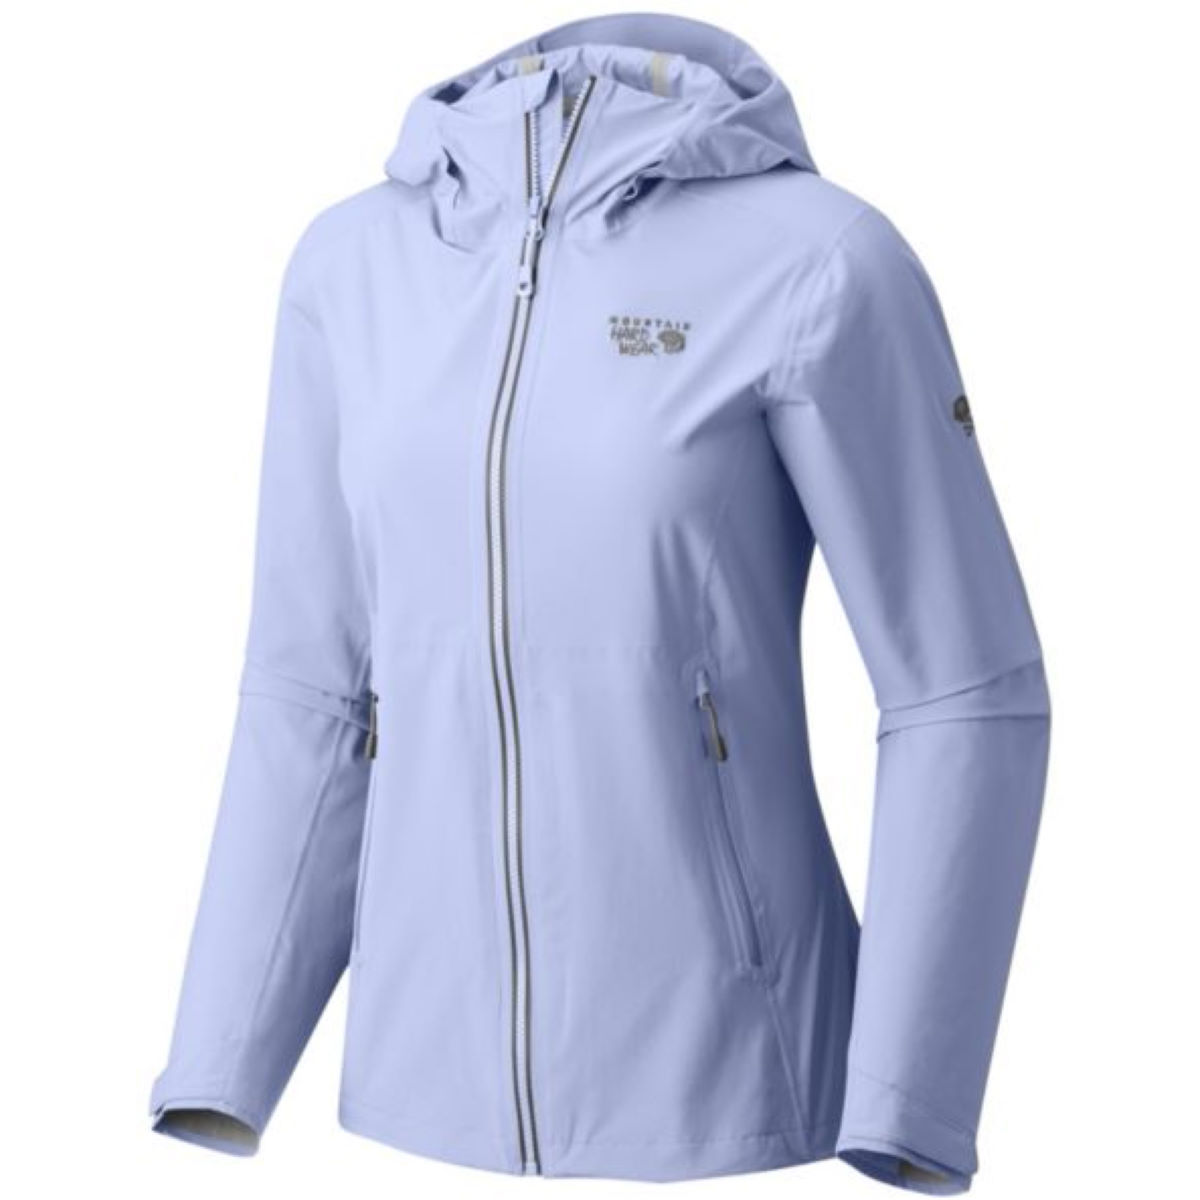 Mountain Hardwear Women's Stretch Ozonic™ Jacket - Chaquetas